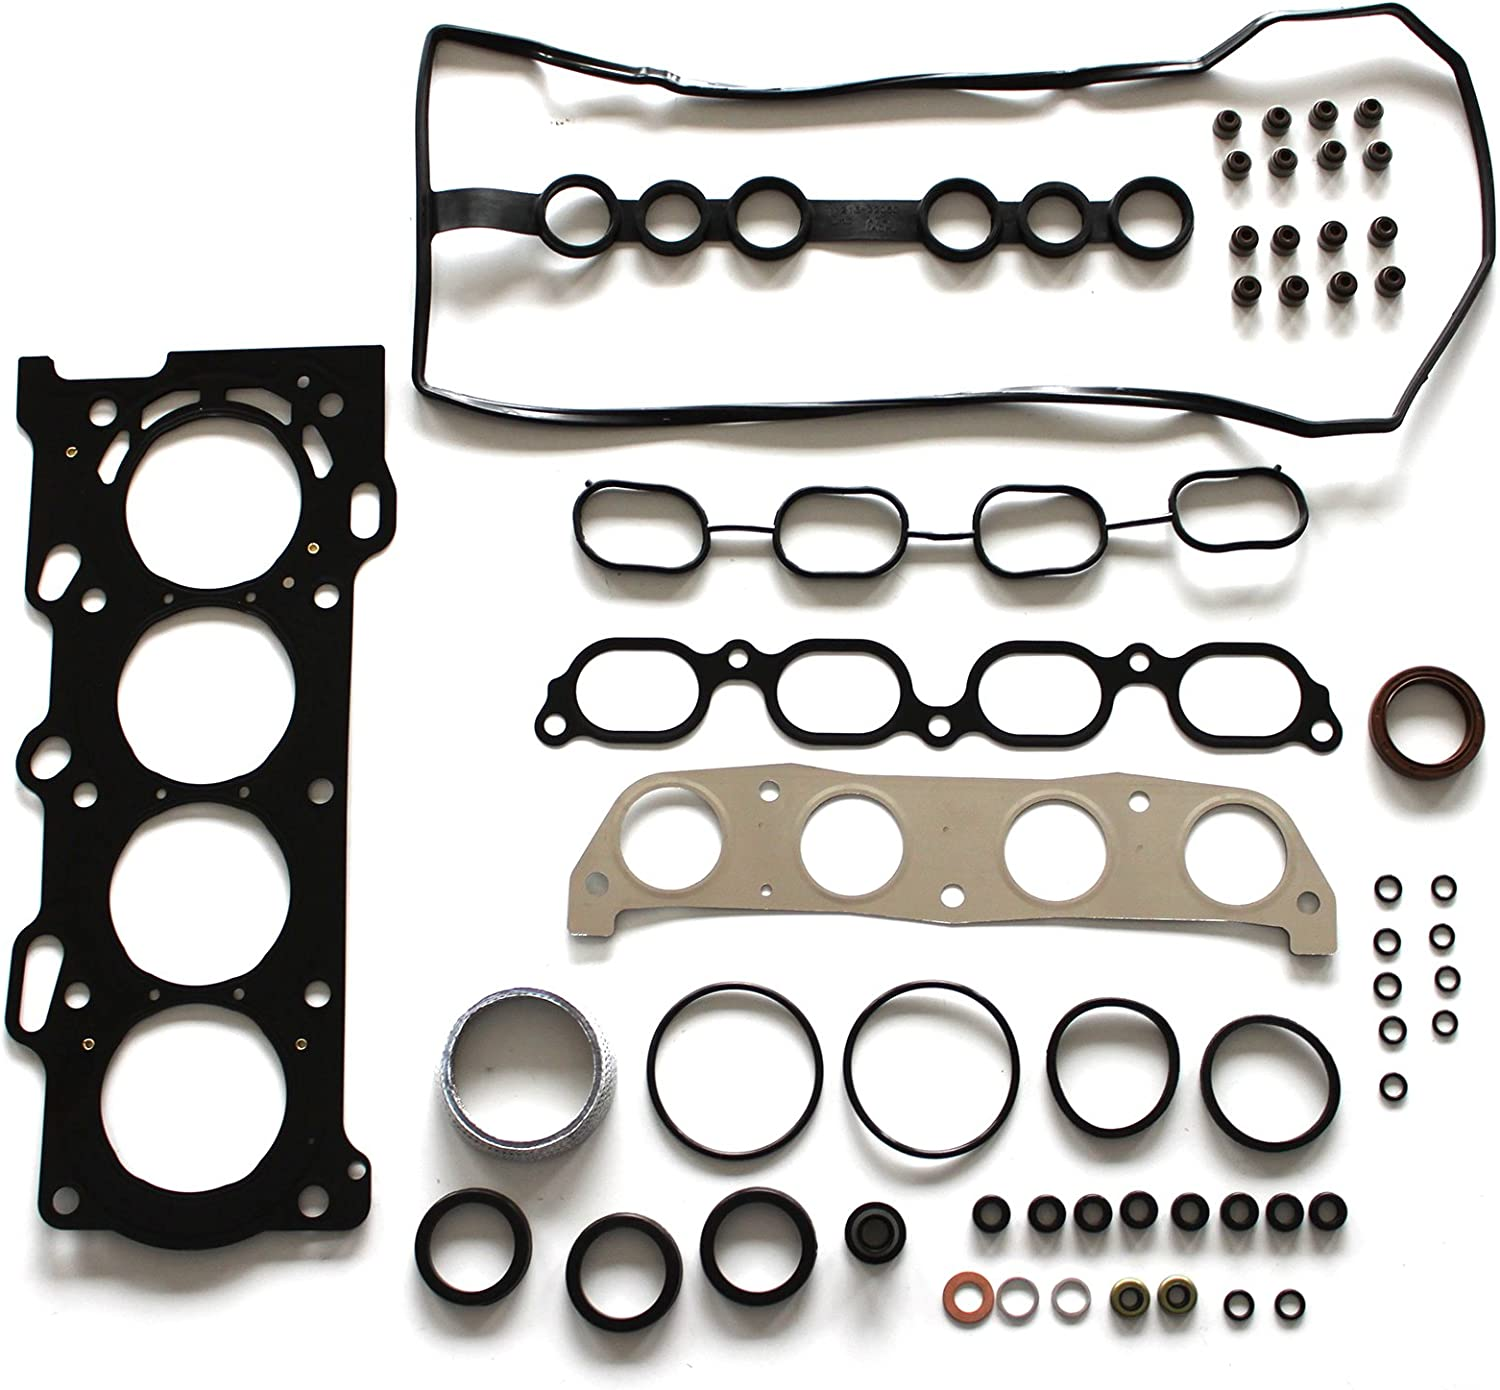 SCITOO Max Special Campaign 71% OFF MLS Cylinder Head Gasket Pr Set Replacement Chevrolet for